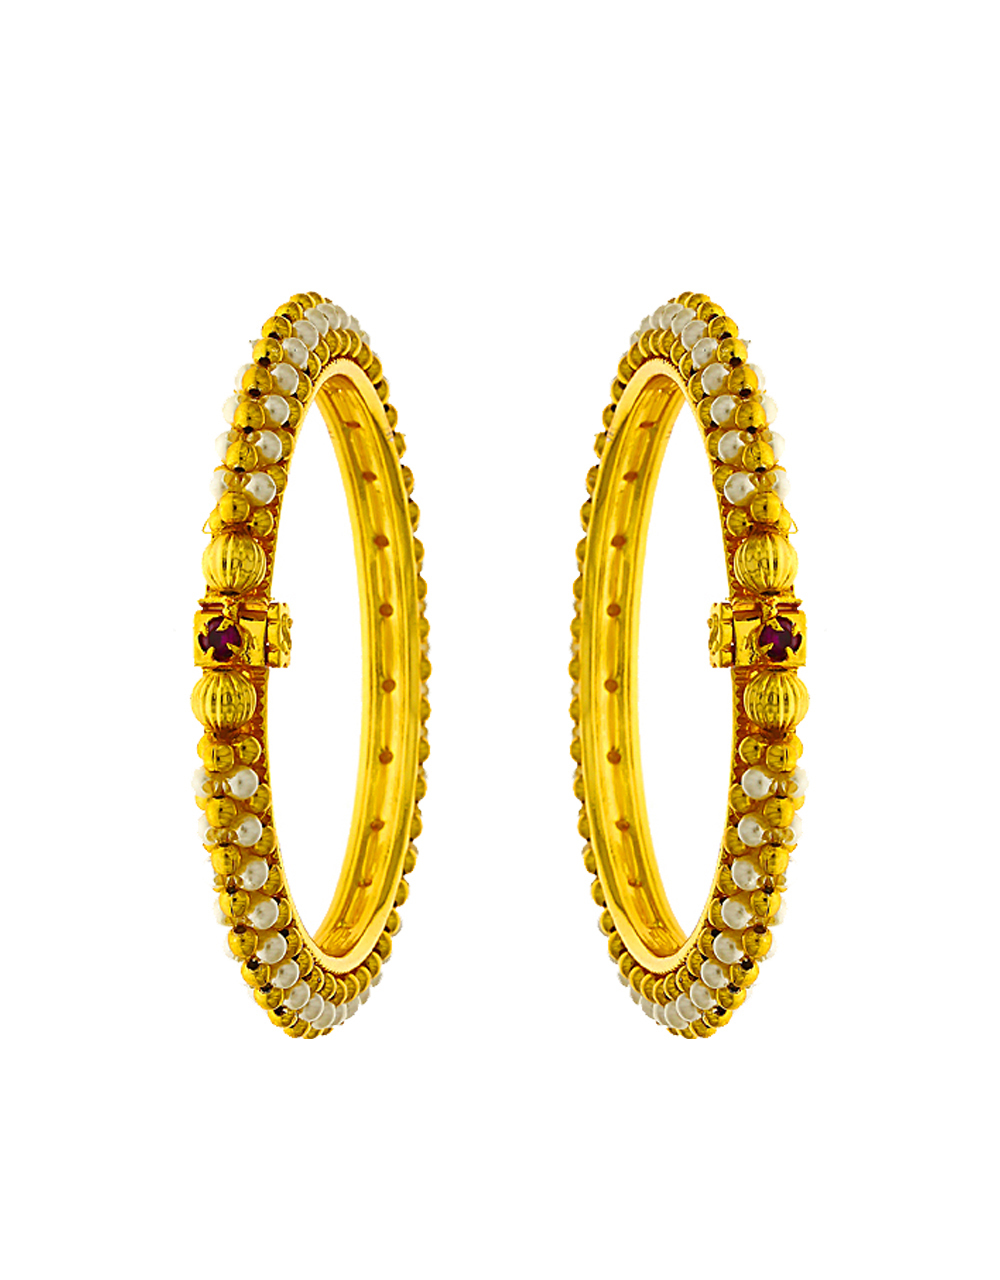 Fancy Designer Bangles Decked With Delicate Tiny Pearl And Studded With Pink Stone Bangles For Women